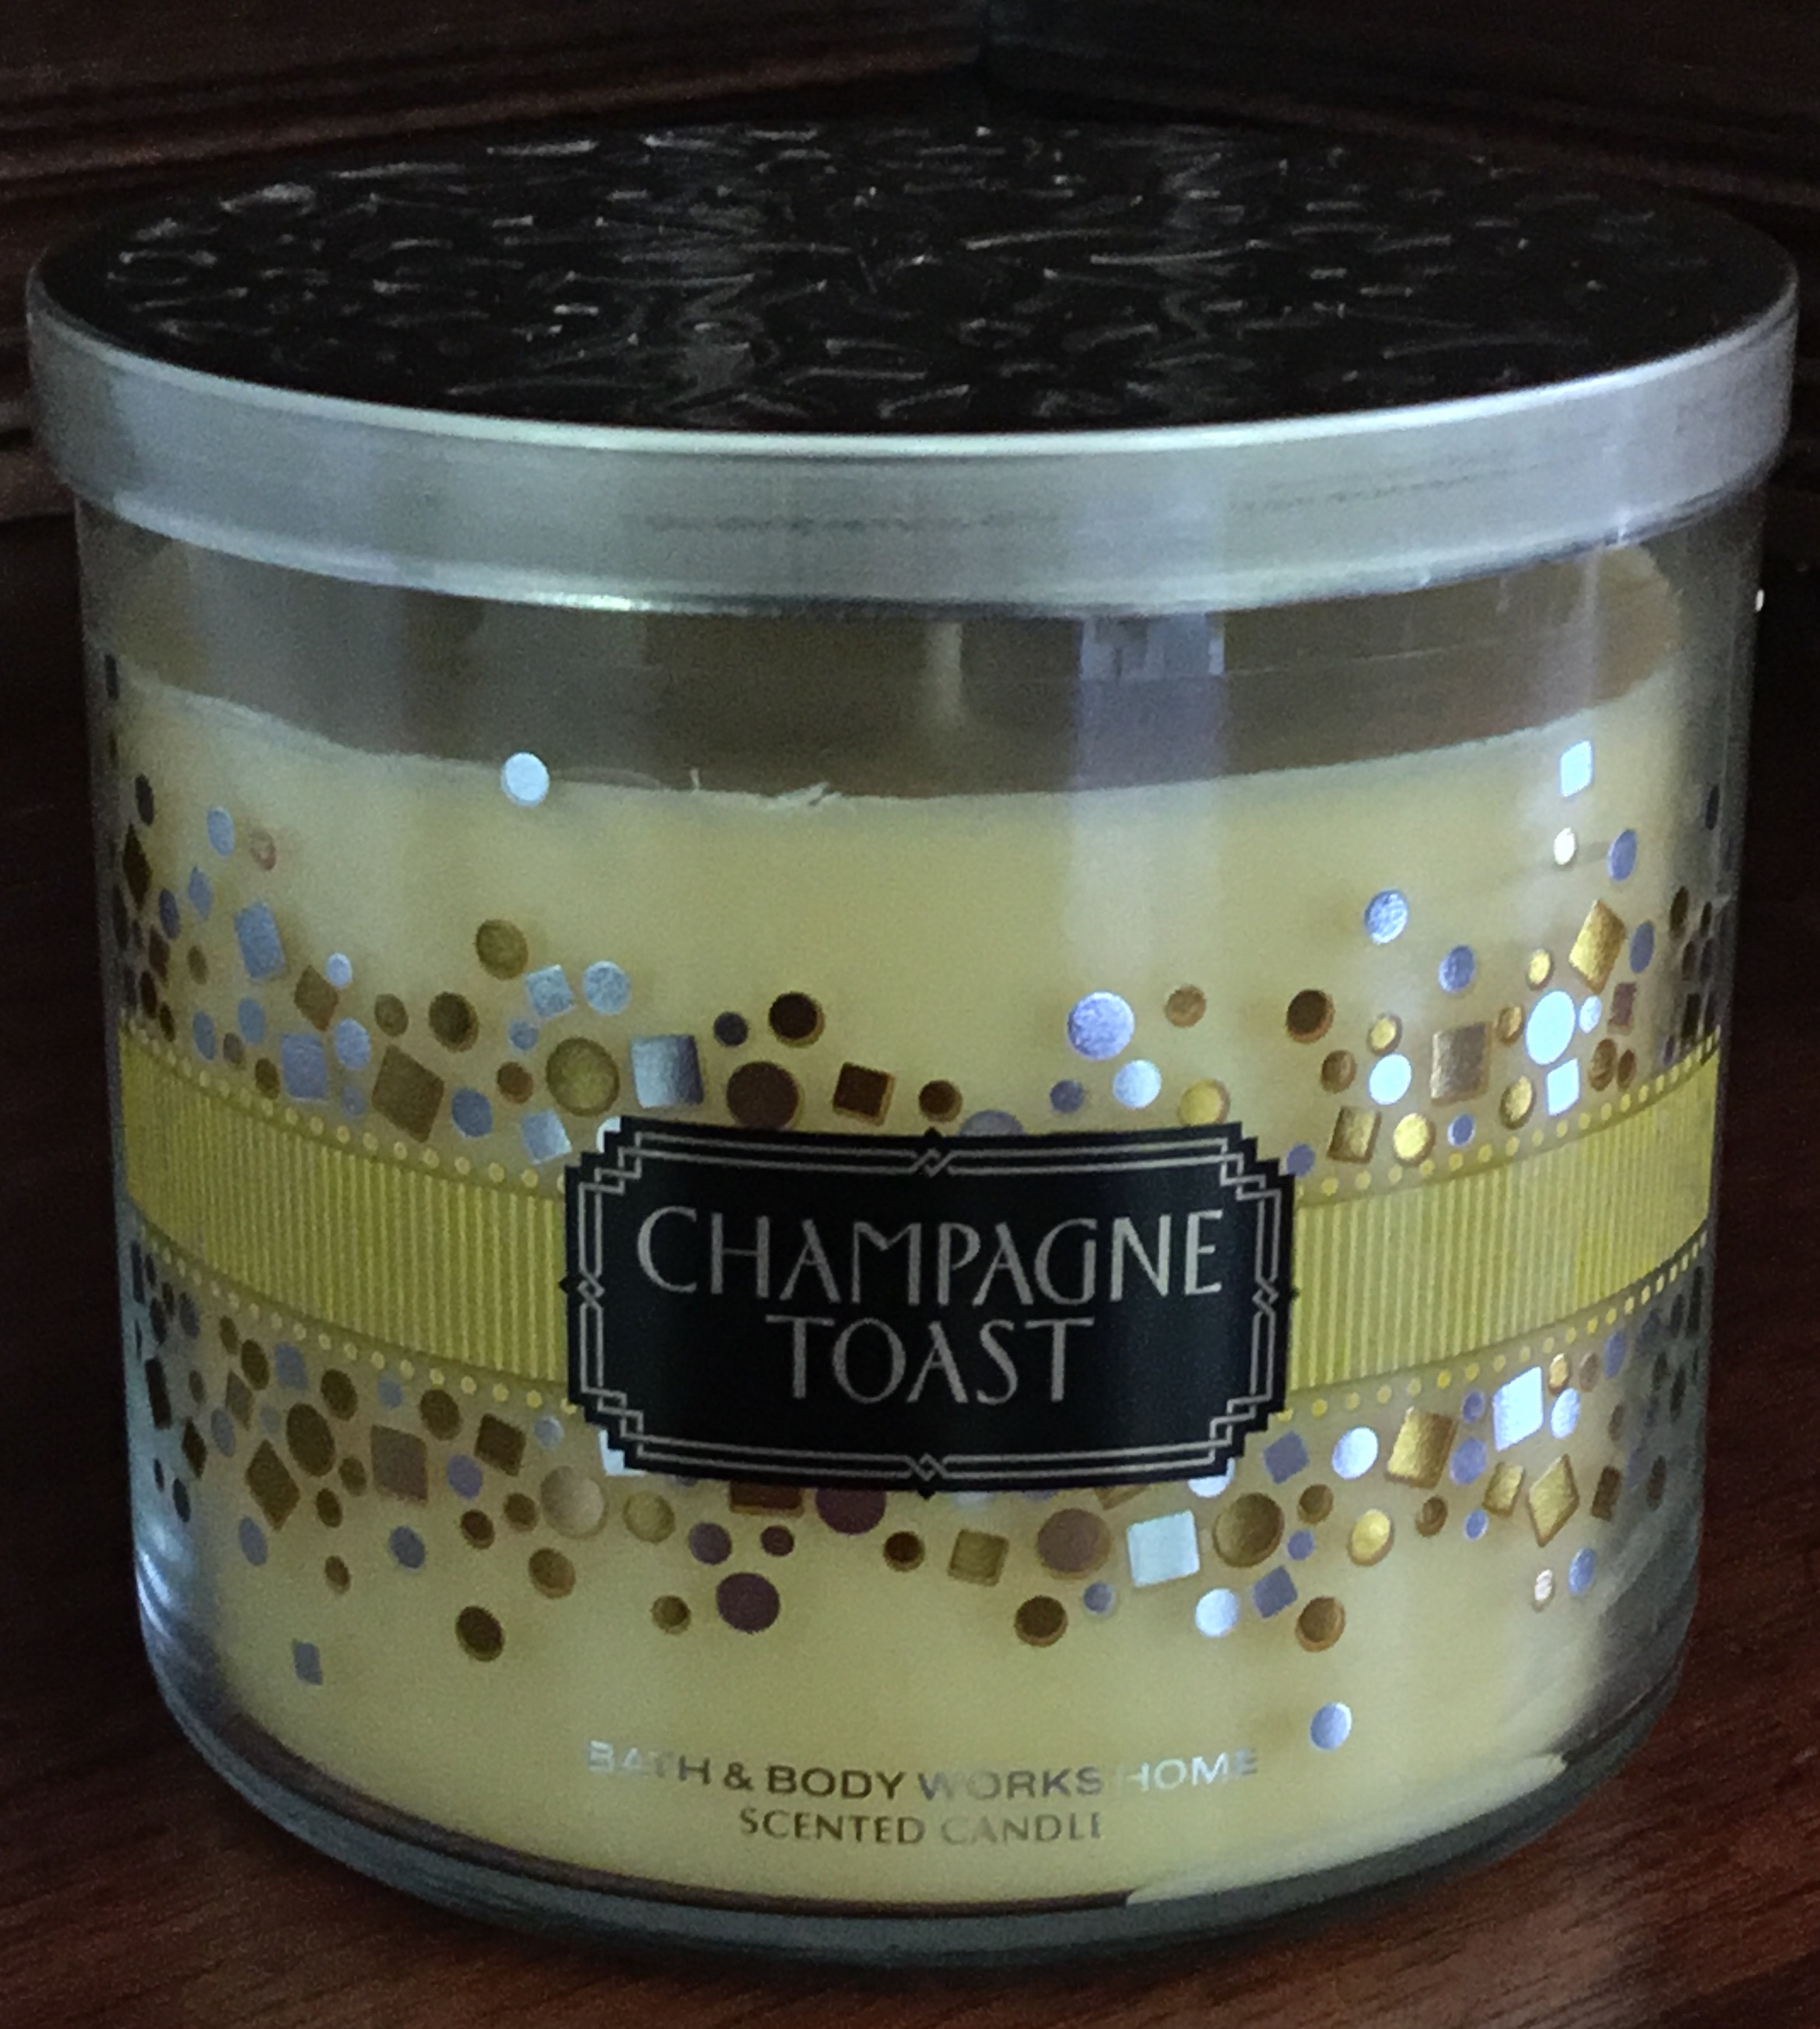 Bath & Body Works Champagne Toast Candle